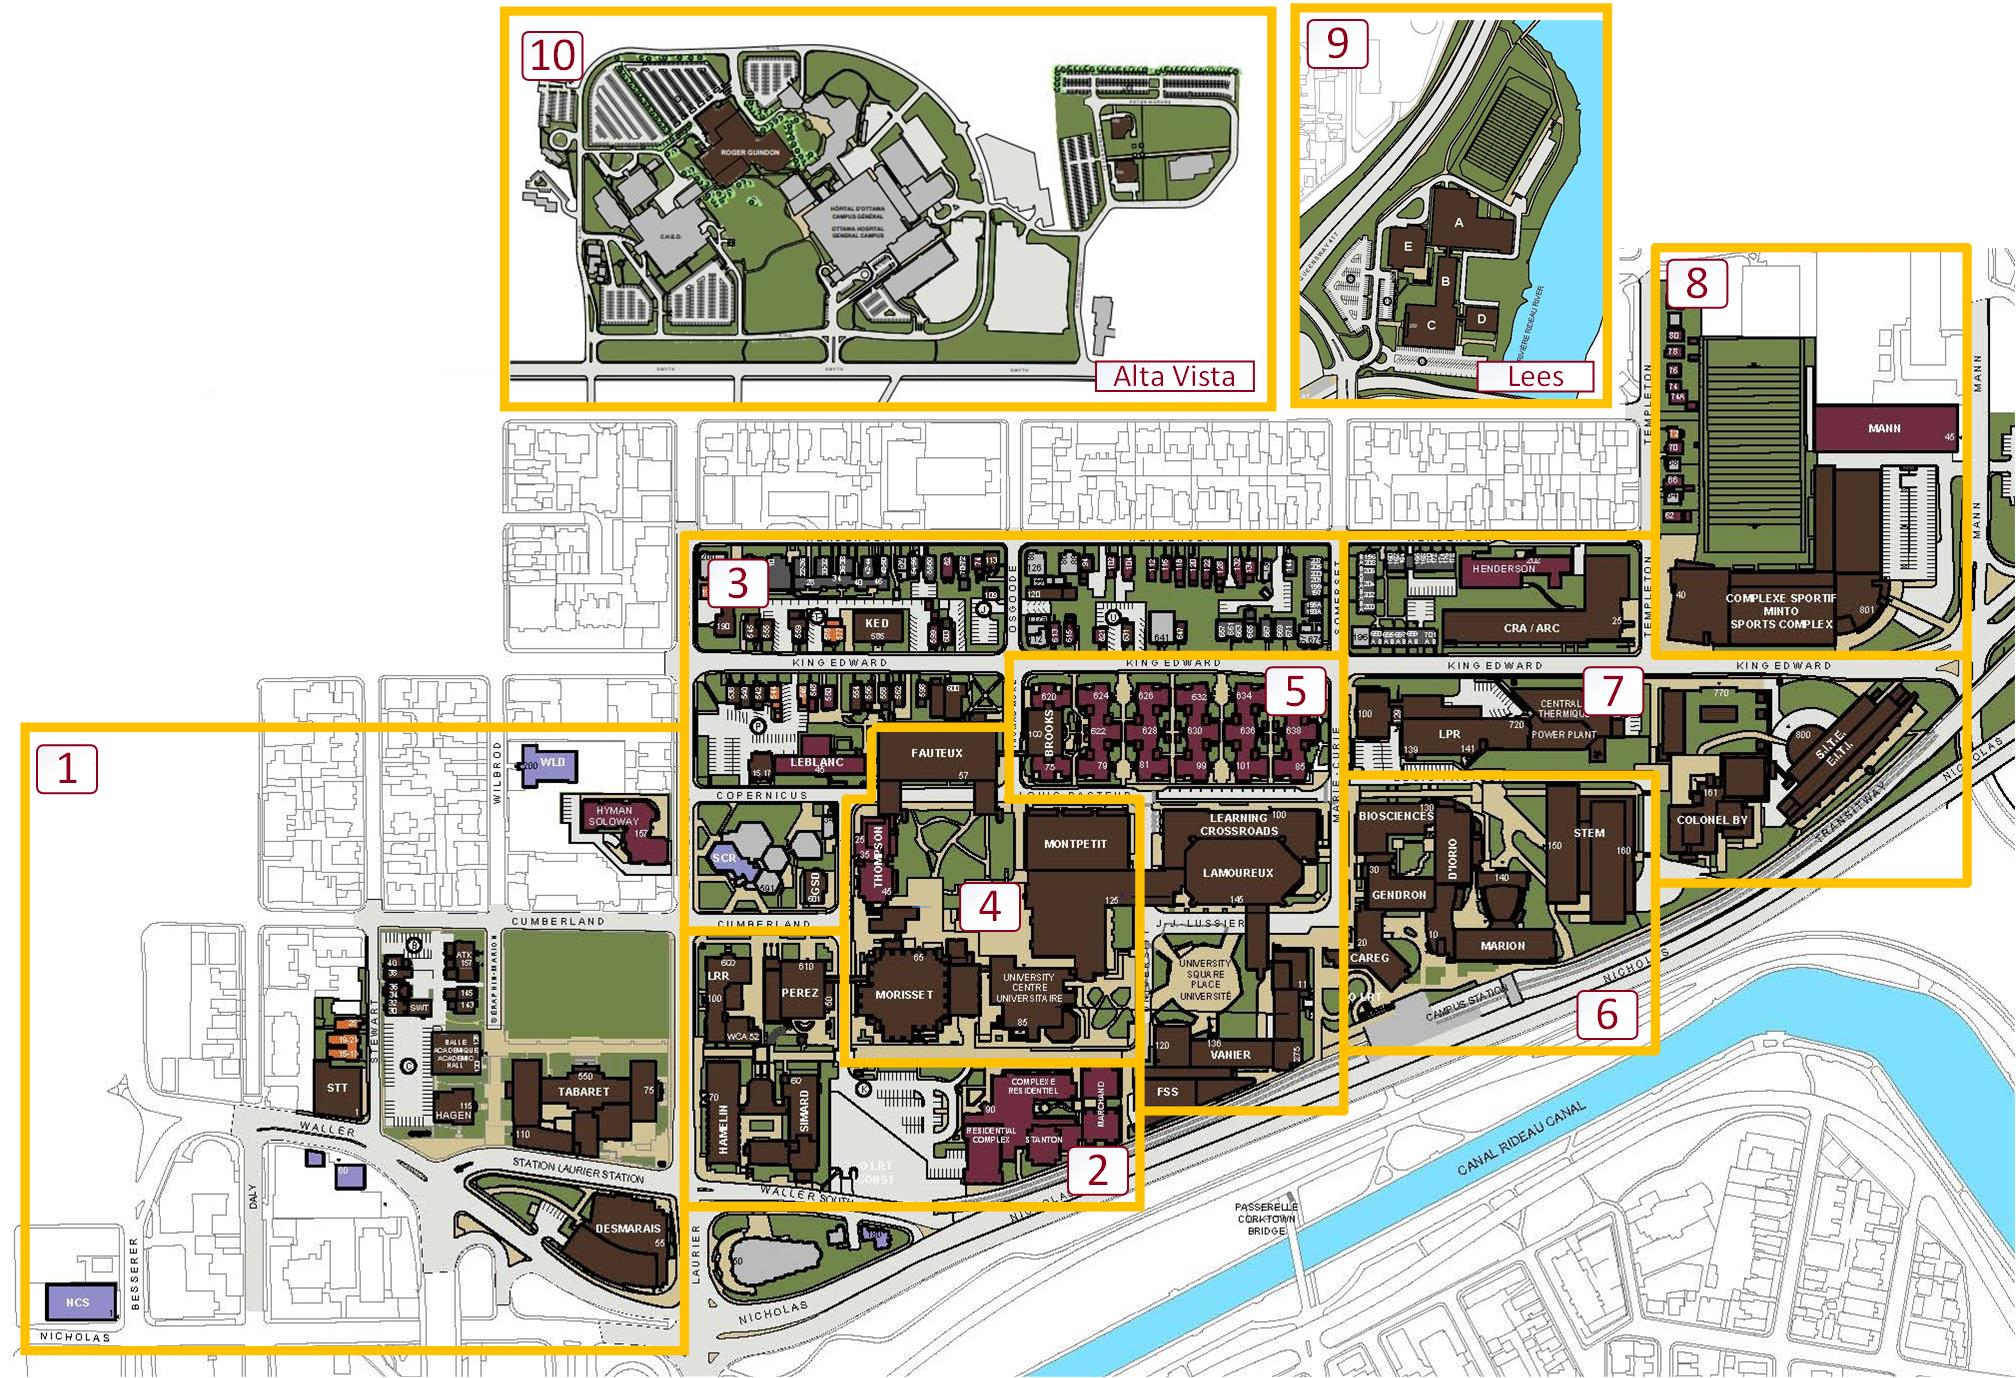 Images of campus divided into zones